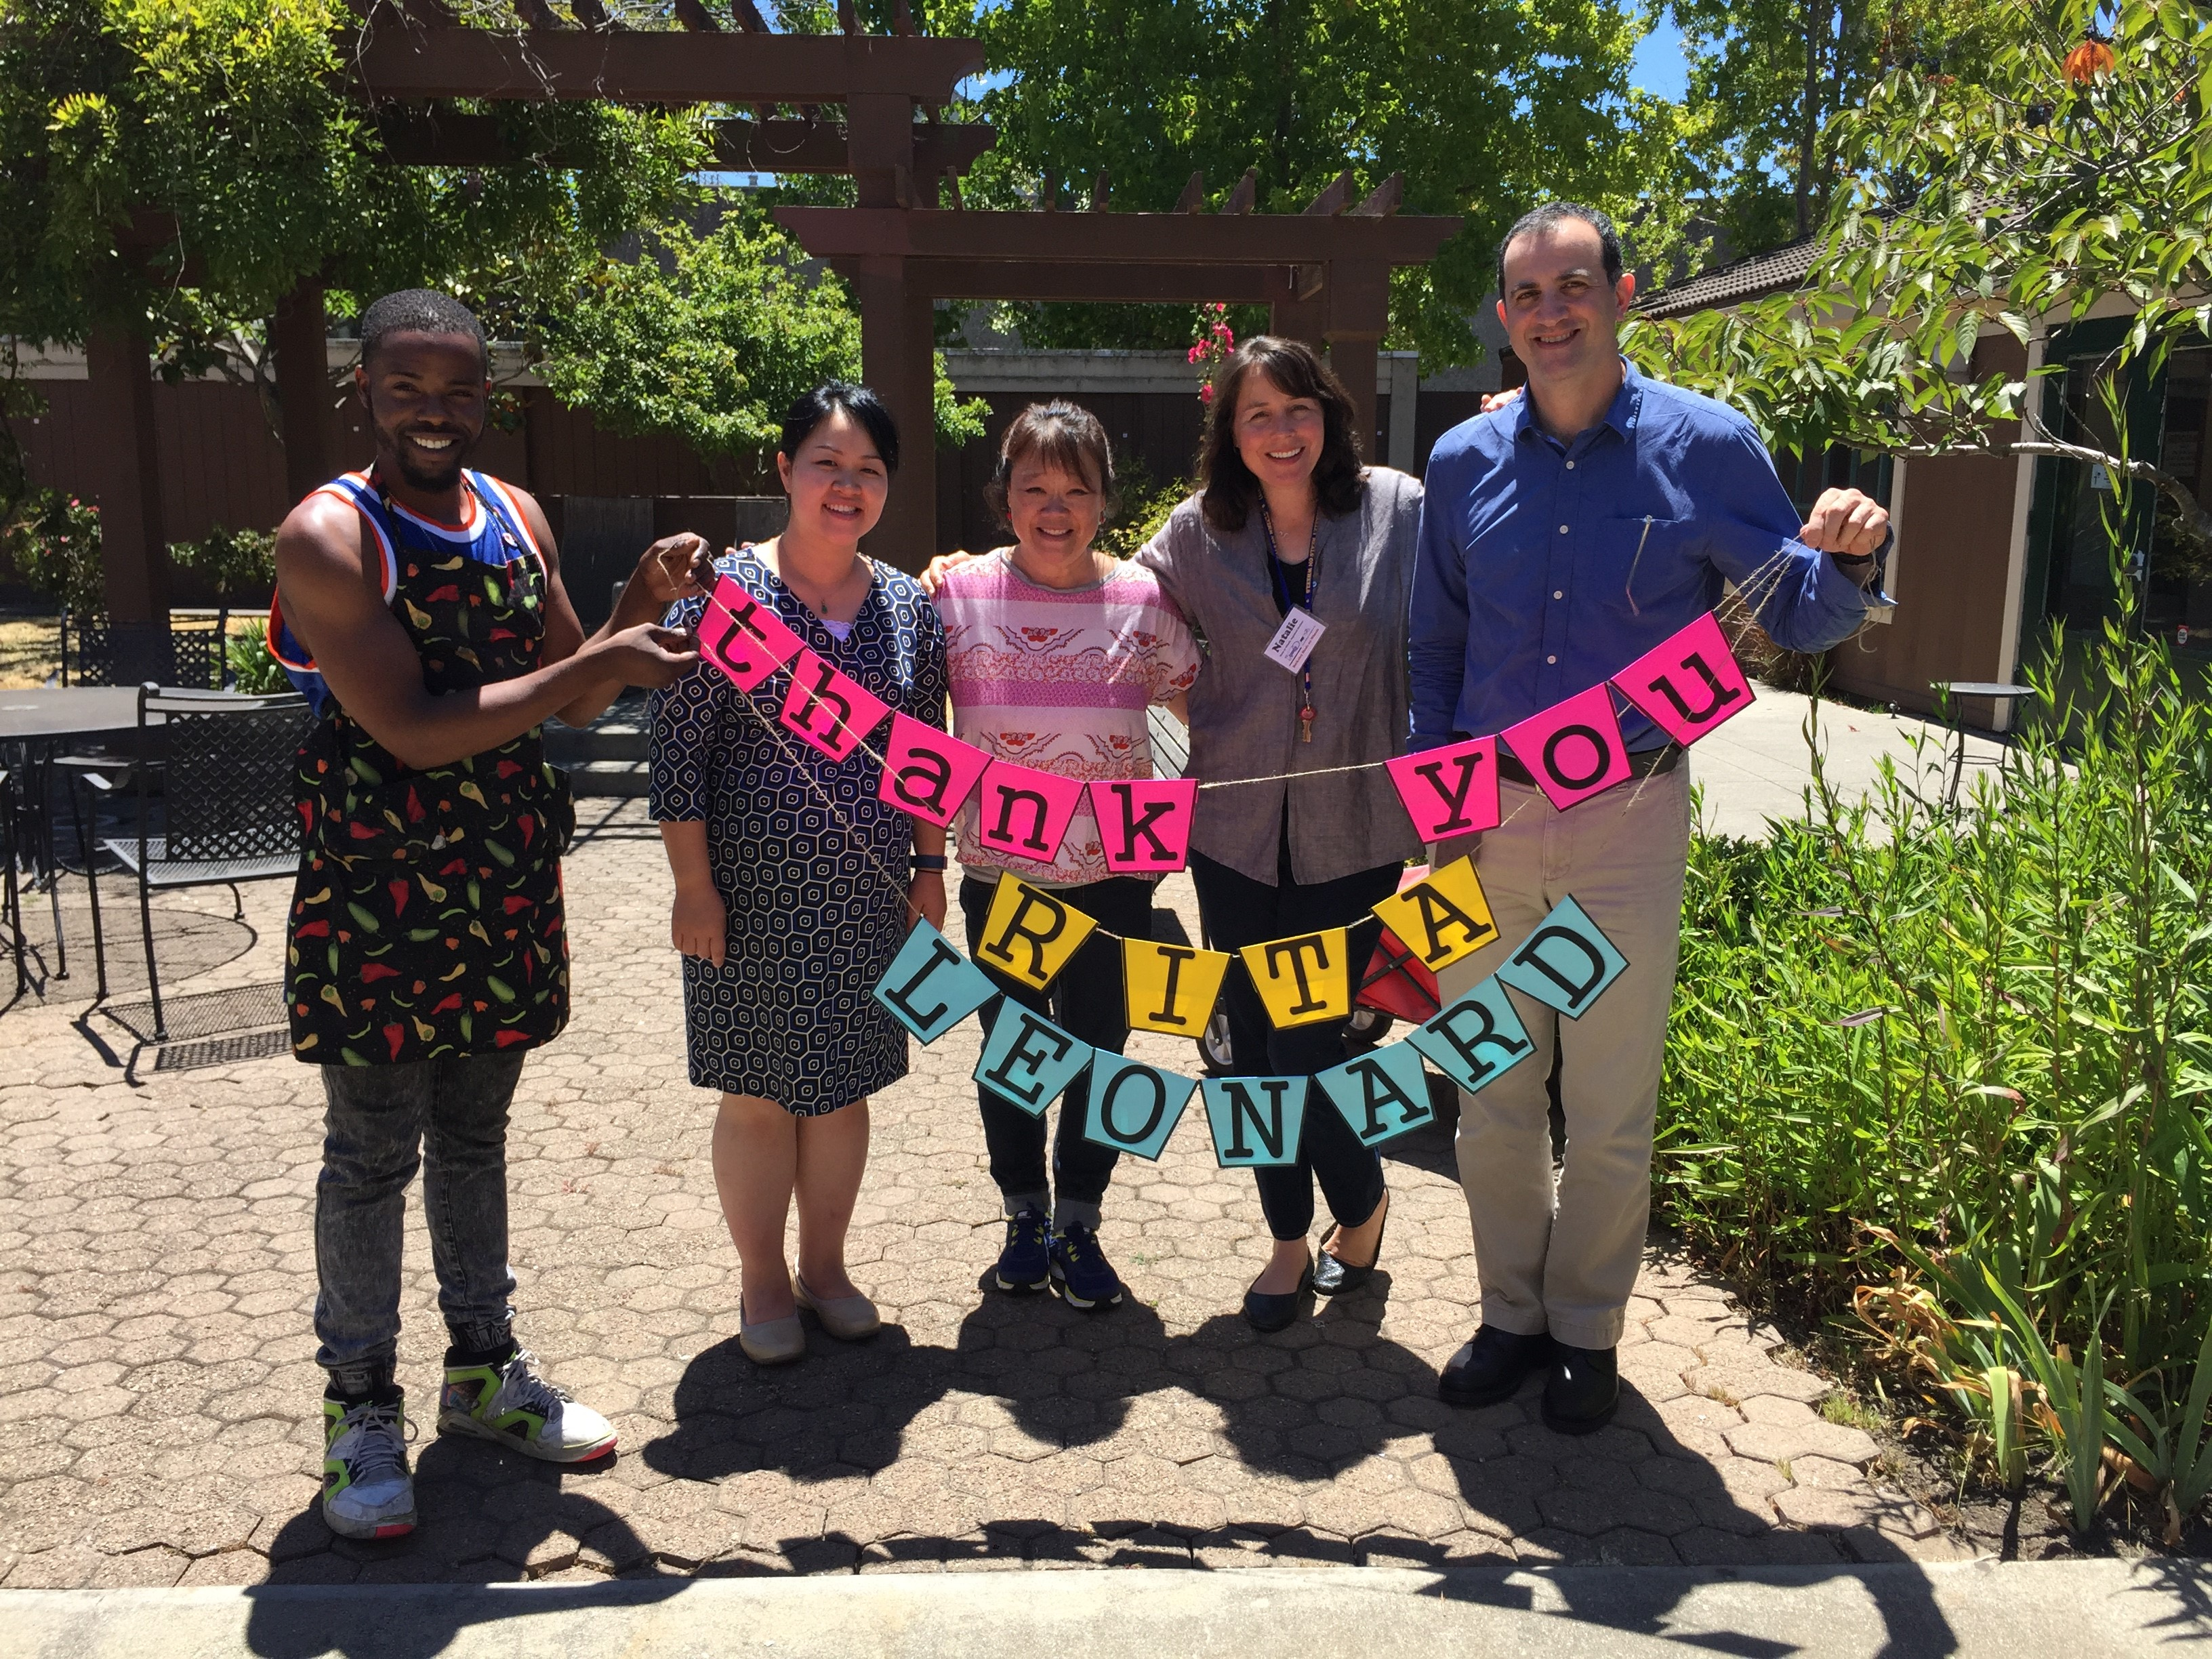 Check out Team Berkeley Meals on Wheels' team fundraising